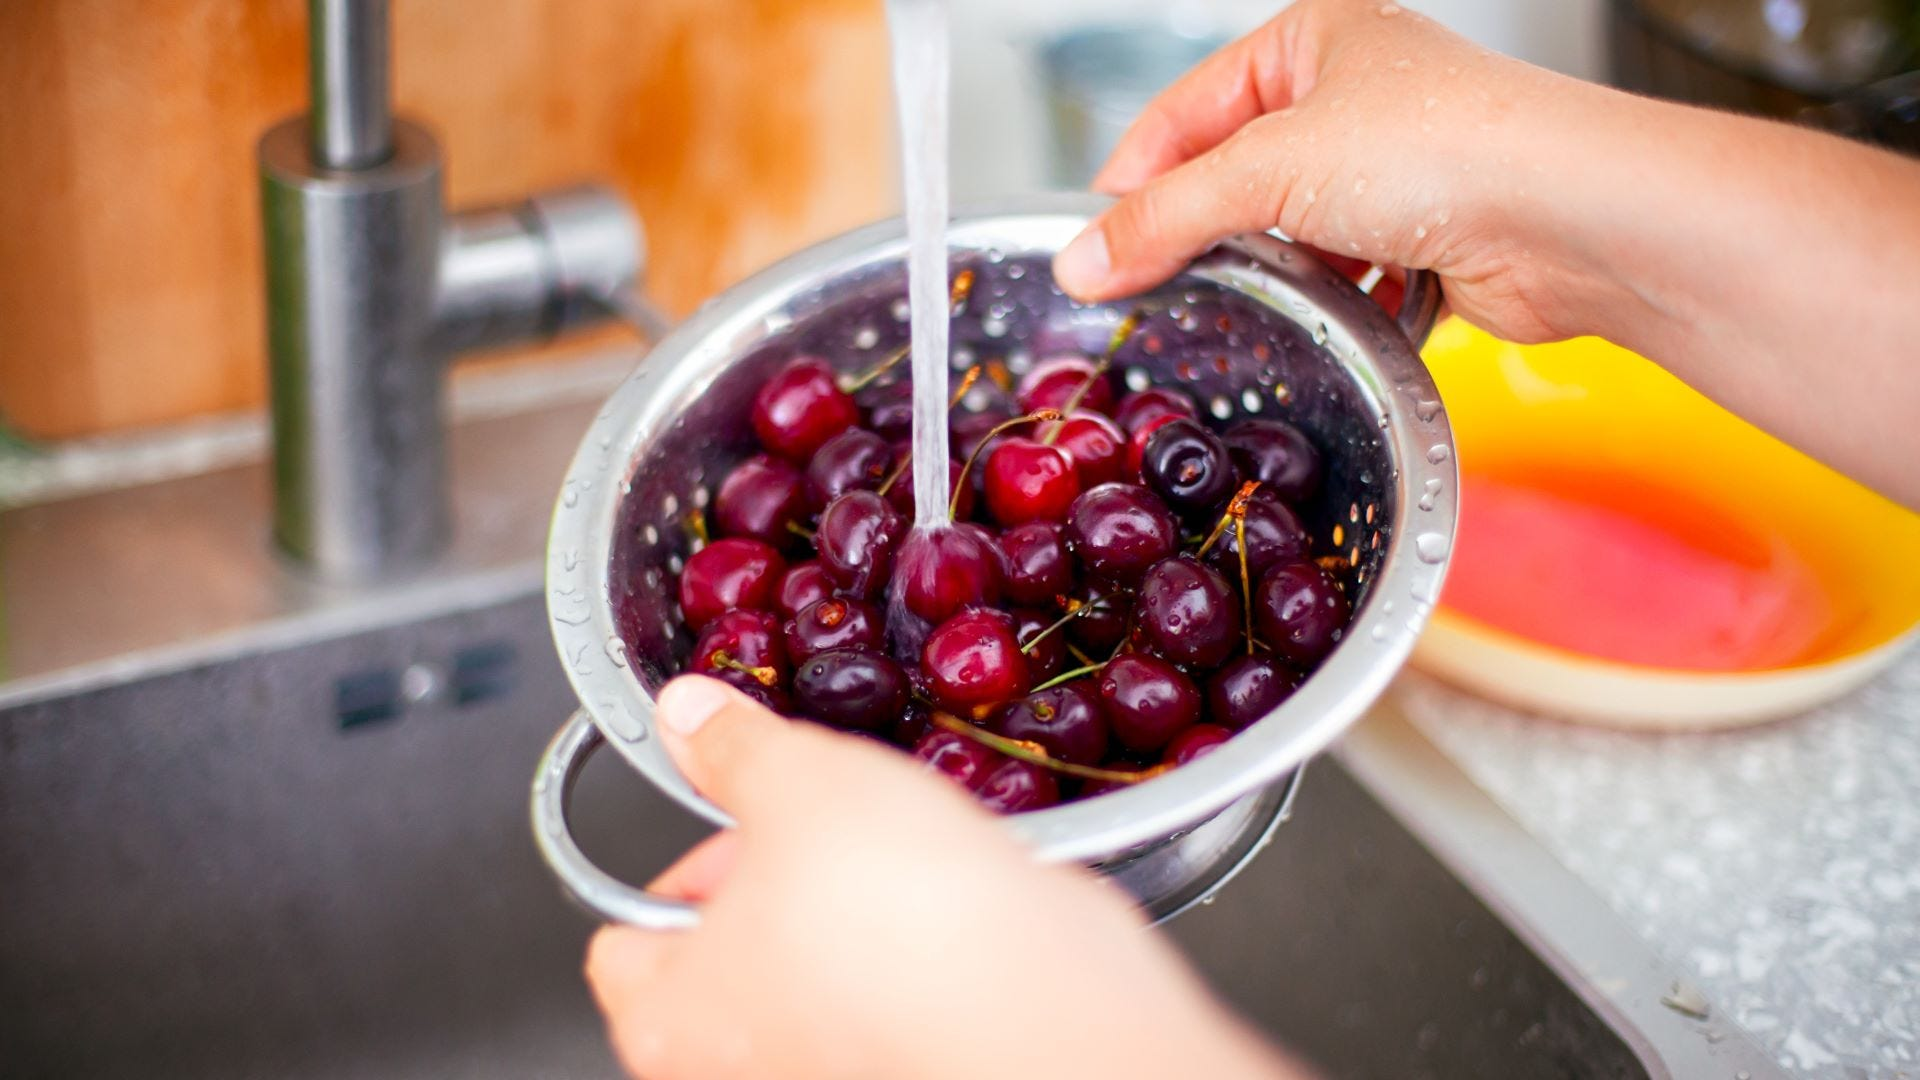 Someone rinsing a bowl full of cherries under a kitchen faucet.